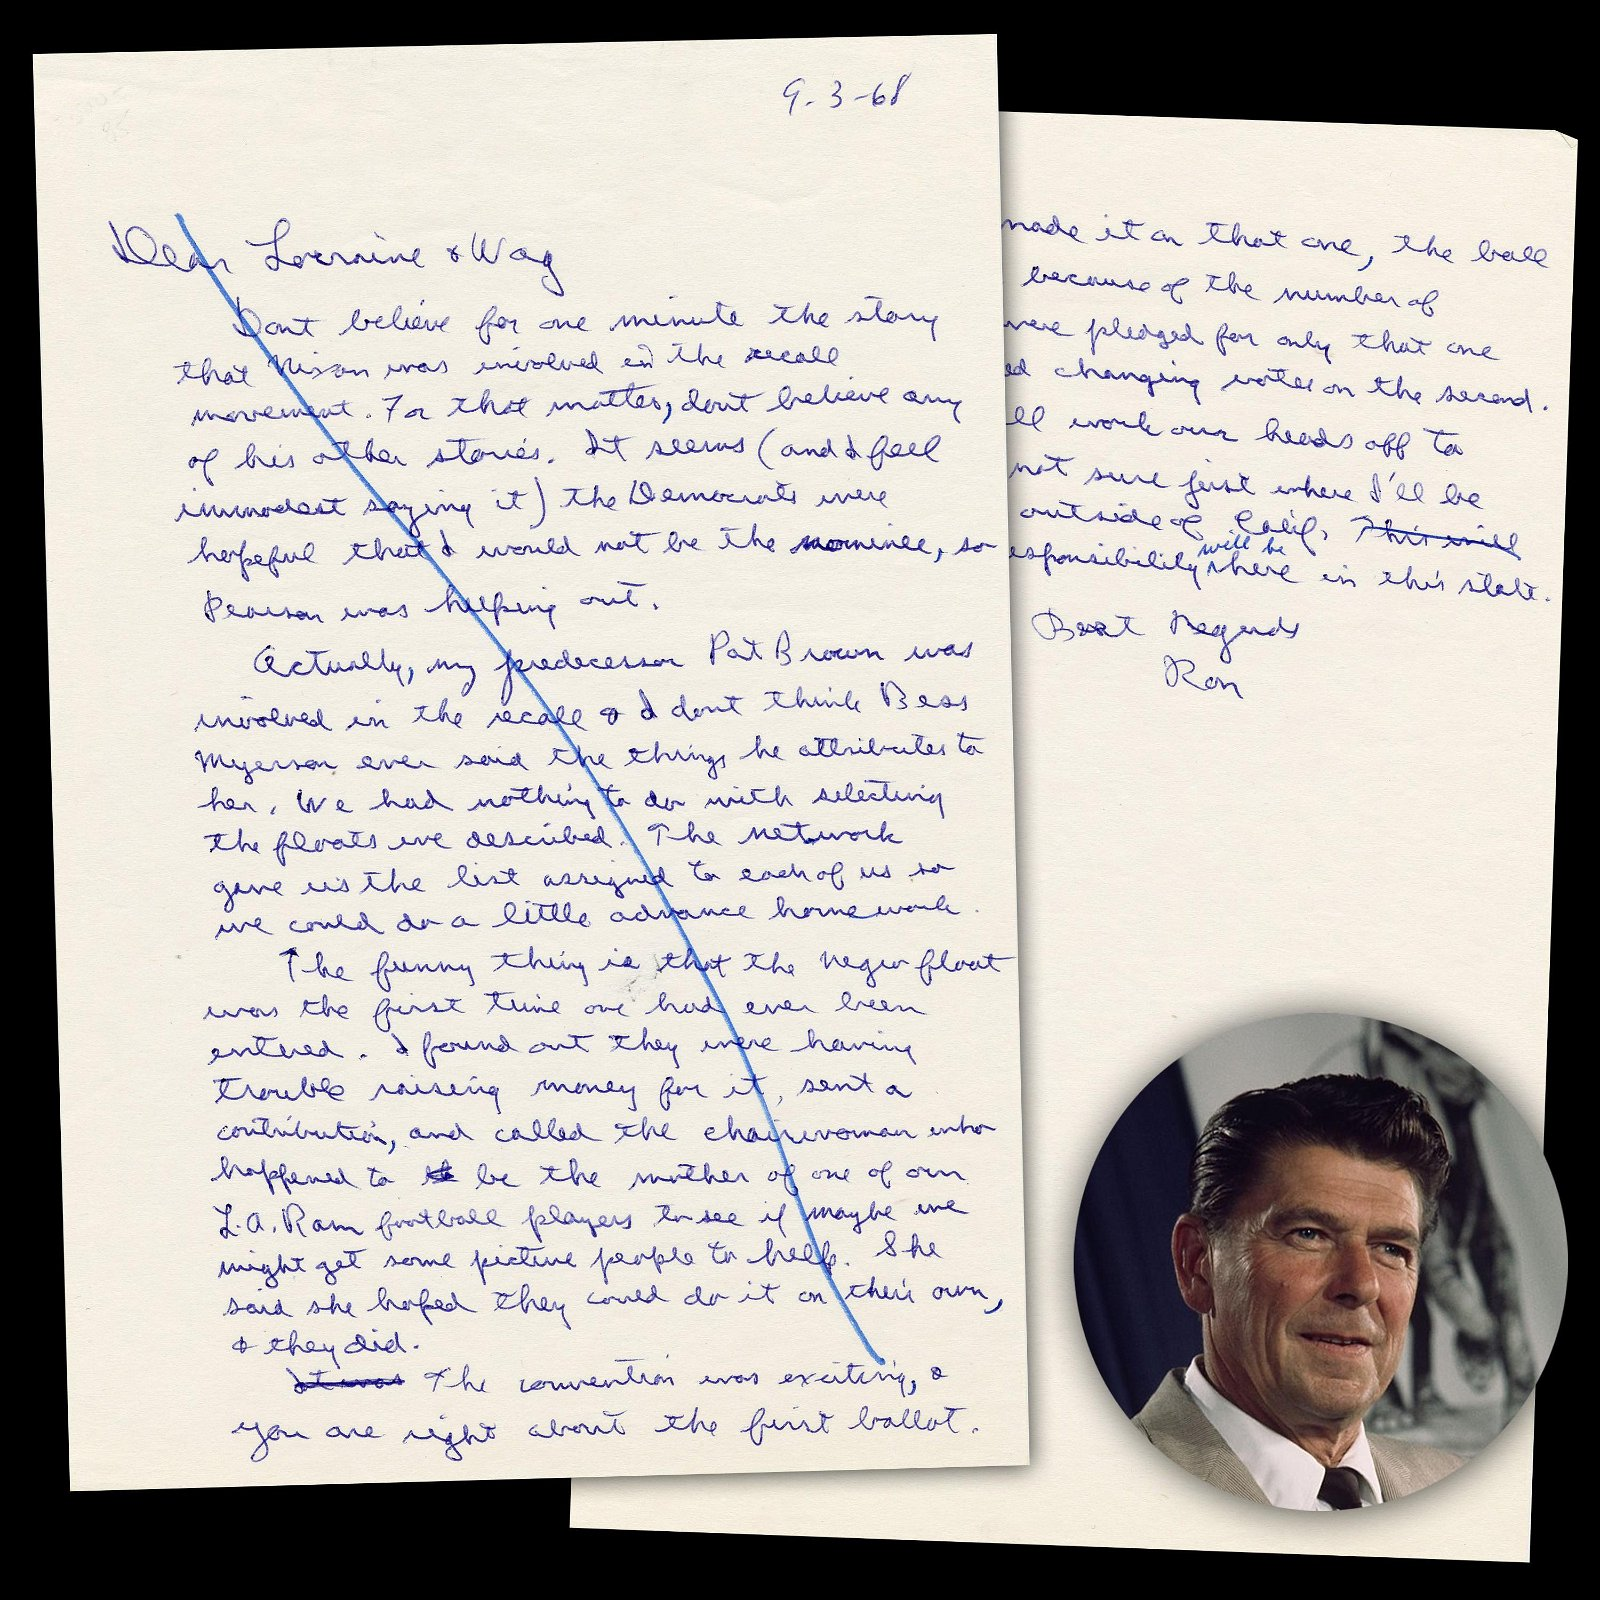 Reagan Bashes Nixon in '68 Primaries & Comments on